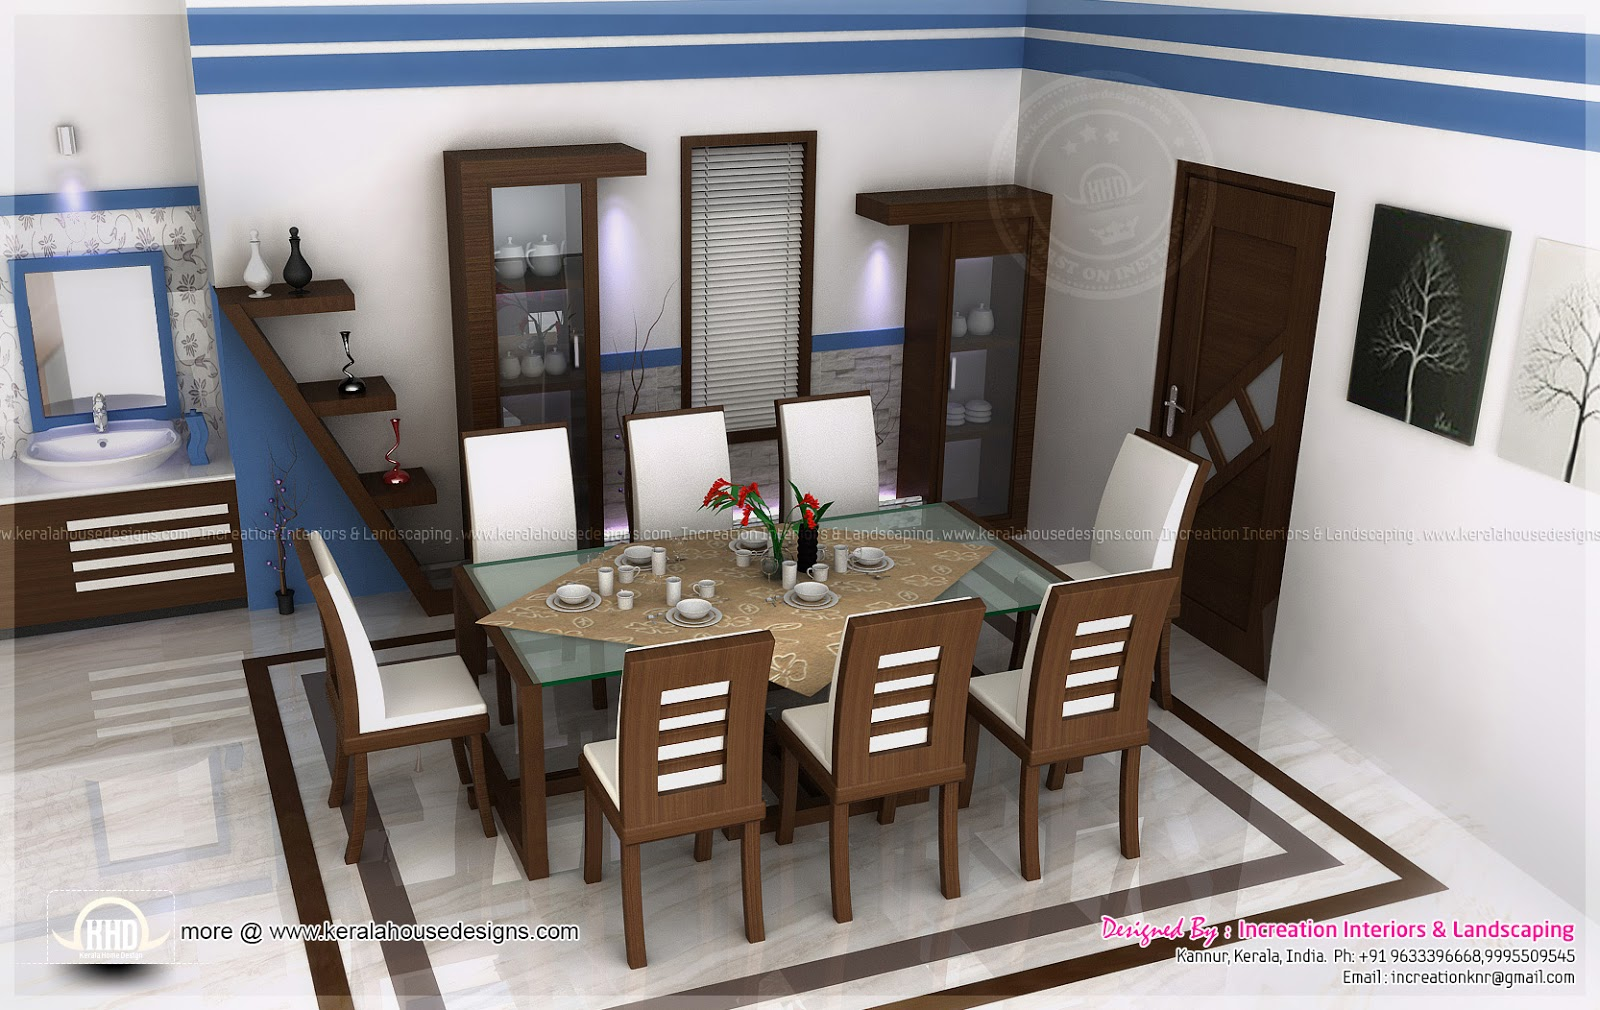 House interior ideas in 3d rendering kerala home design and floor plans Interior design ideas for kerala houses